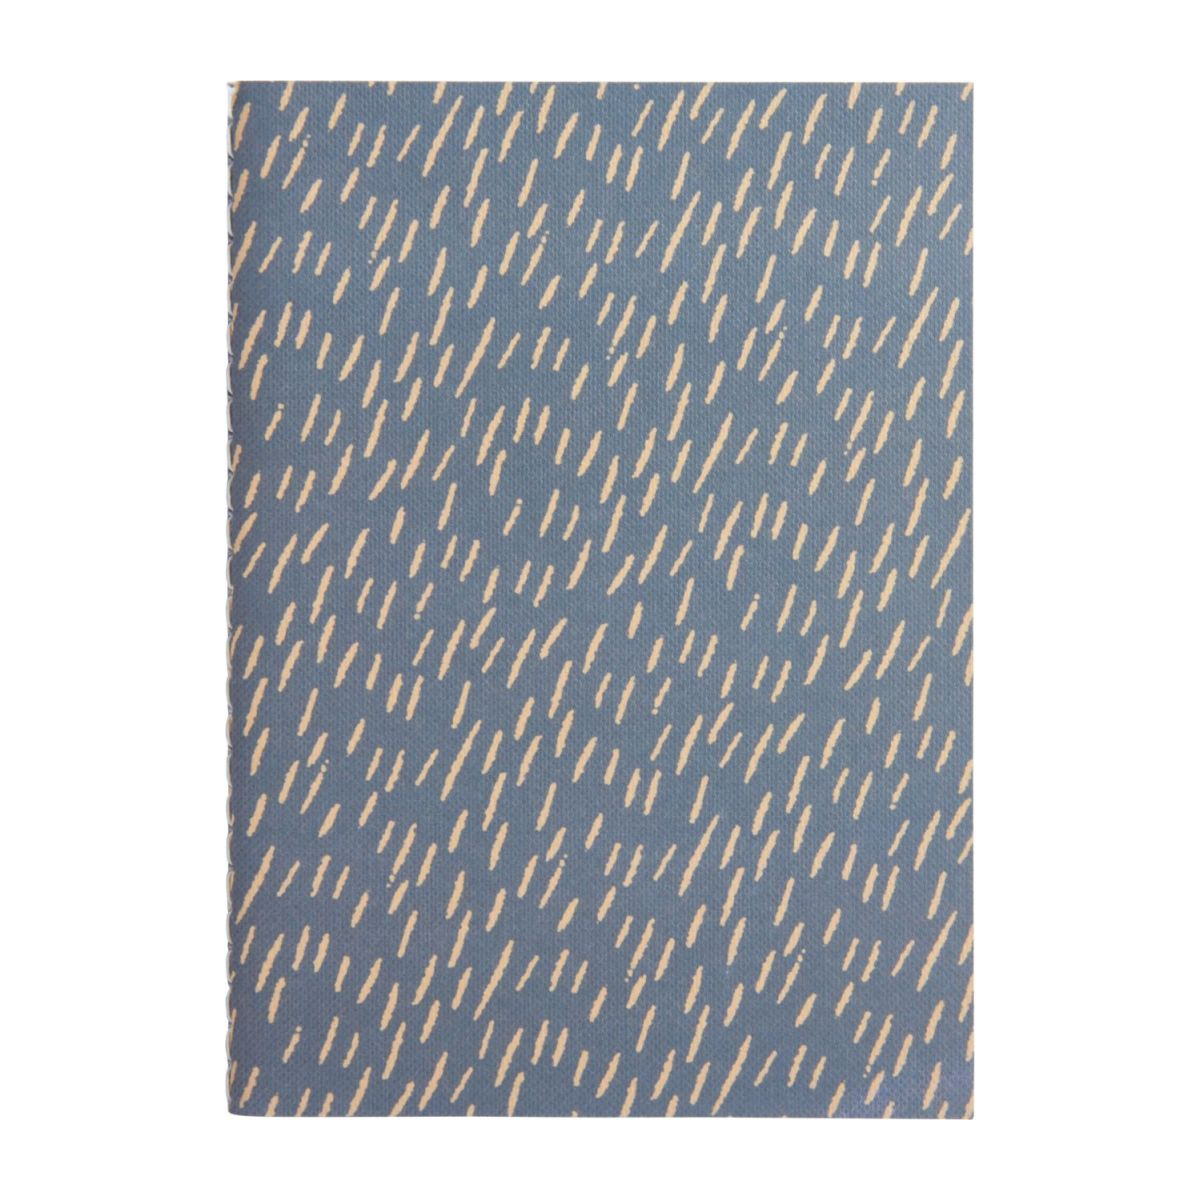 Notebook A5, beige with bunny patterns n°5